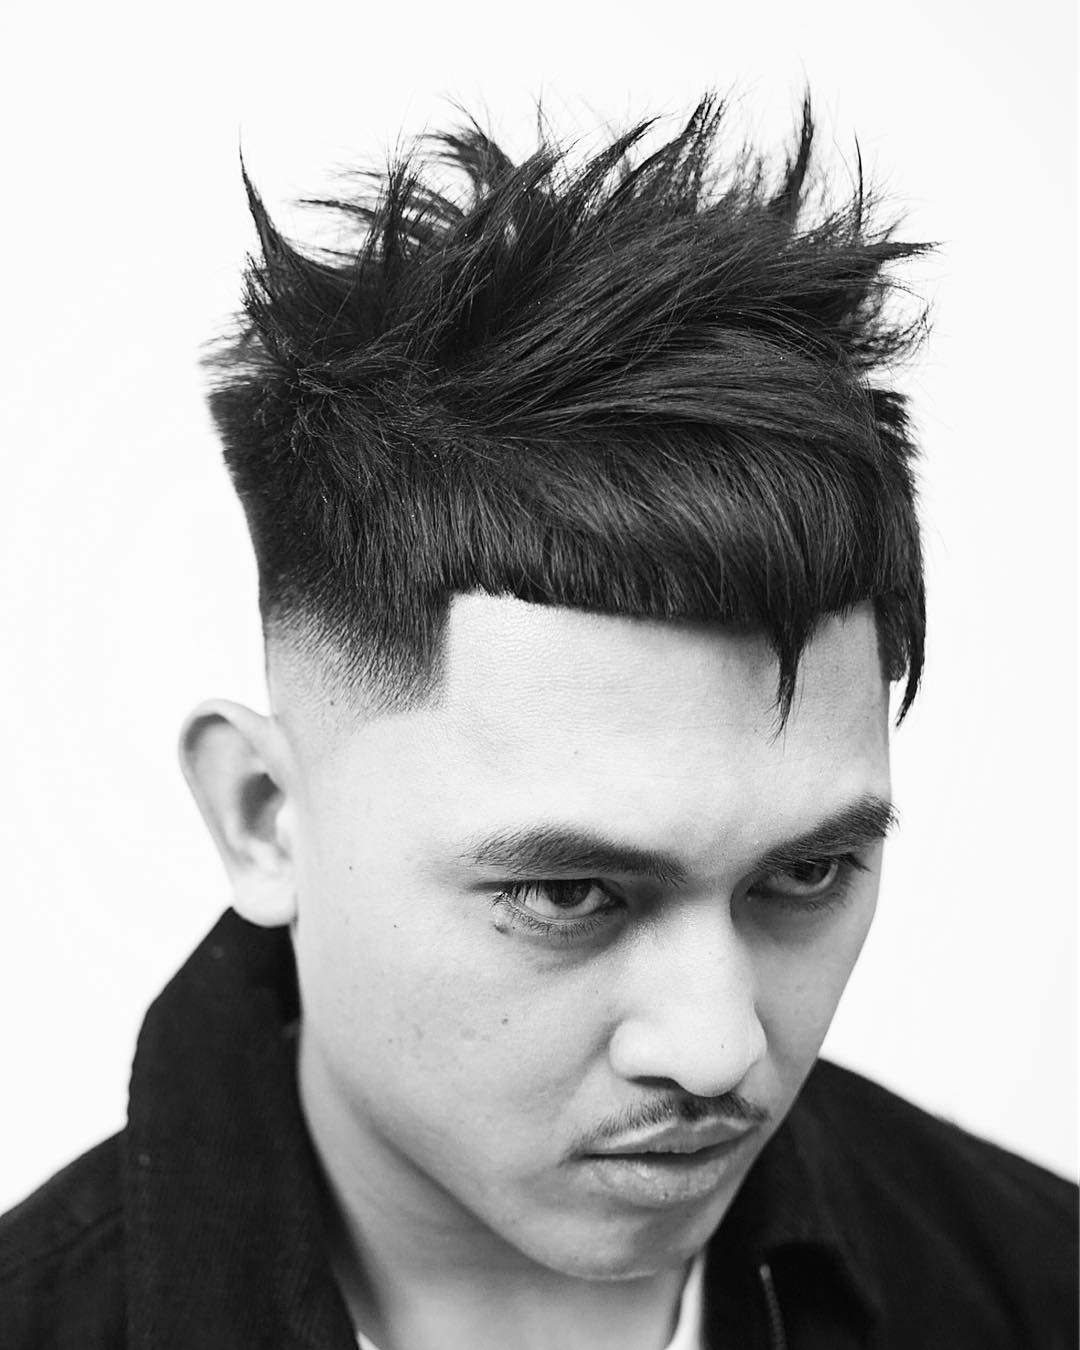 Crop hairstyles for Asian men